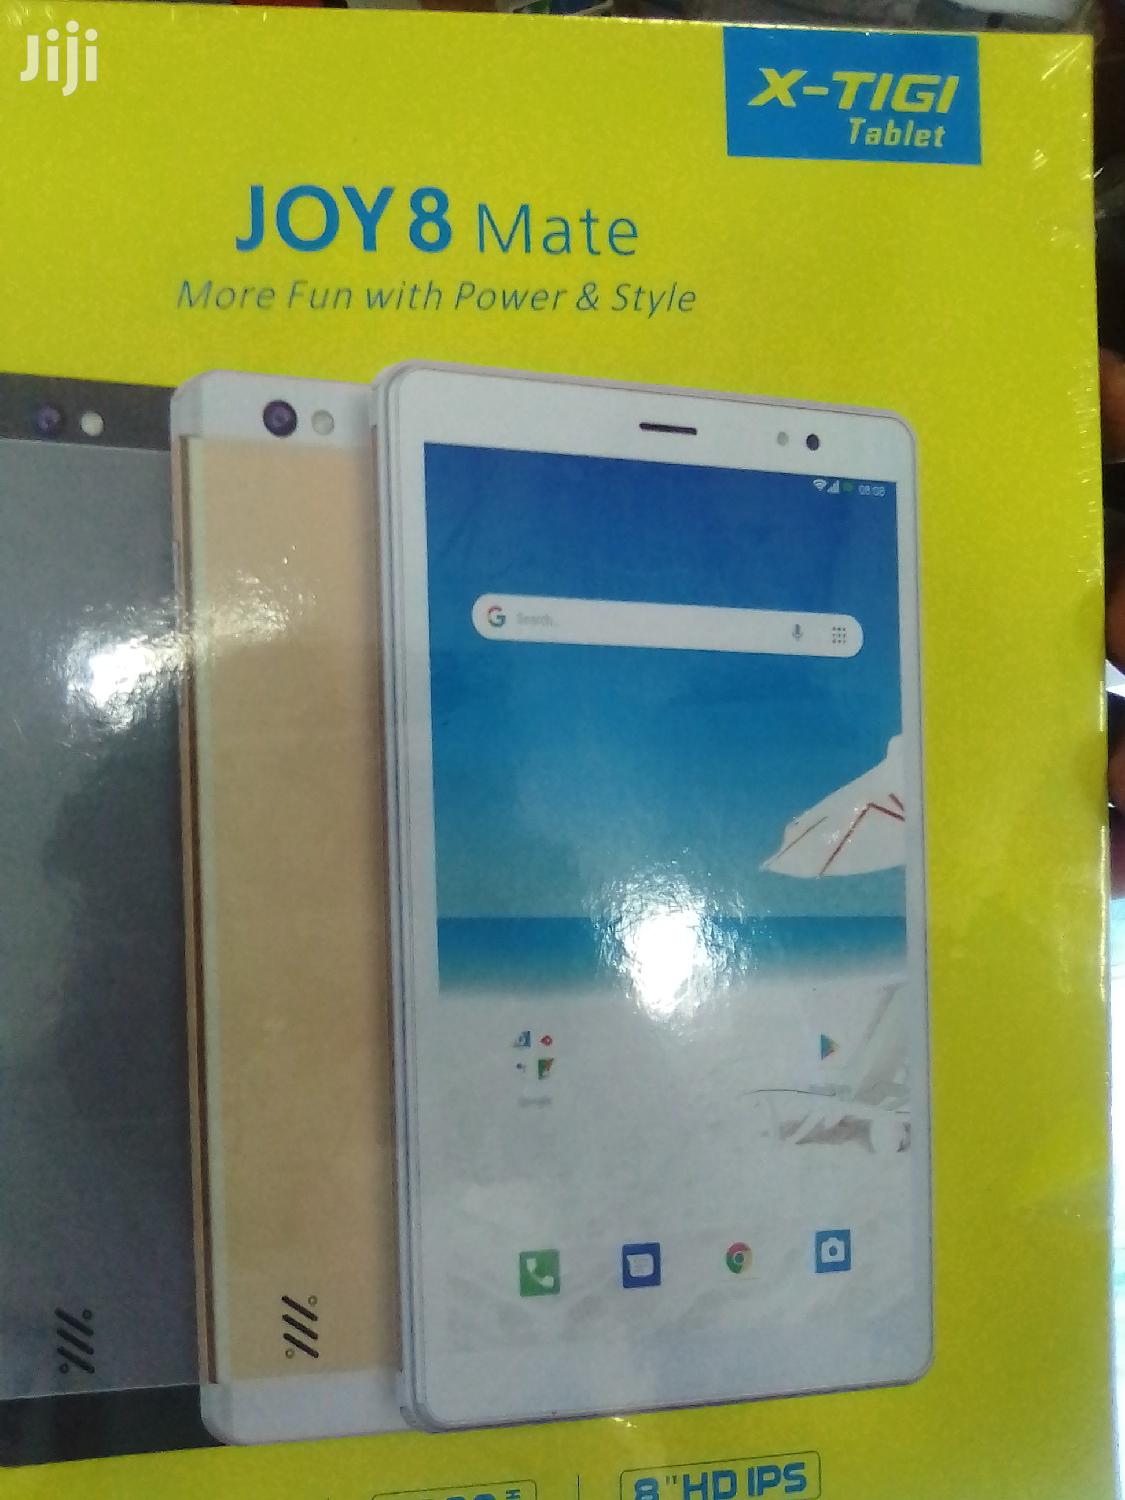 New X-tigi Joy Mate 8 32 GB Yellow